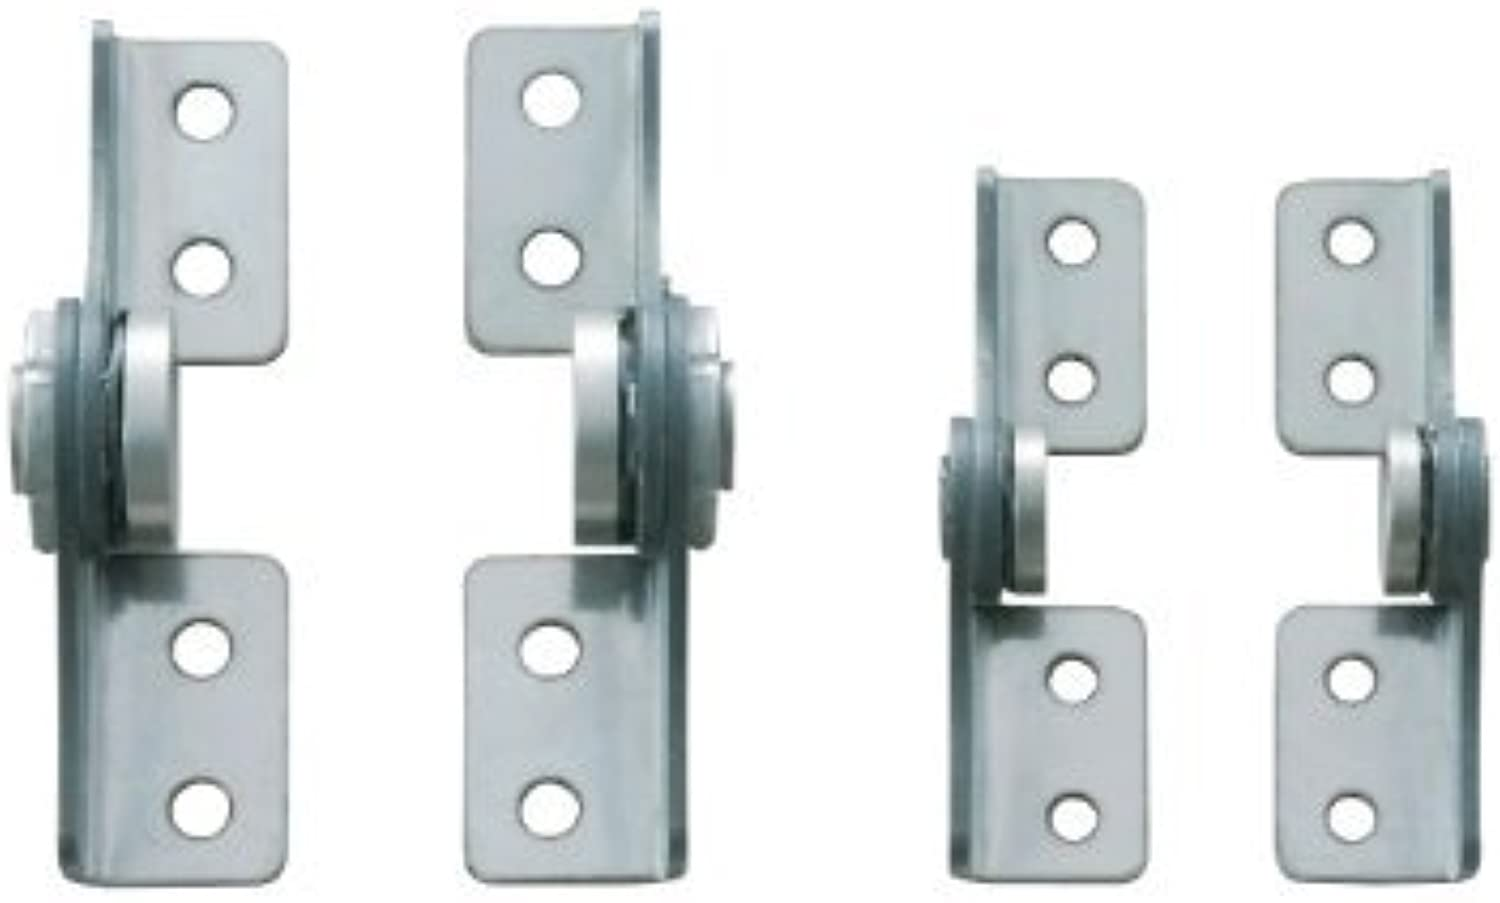 Friction Hinge, 430 Stainless Steel, 1 Leaf Height, 25 8 Open Width, 17.7 lbs in Torque, Left Hand (Pack of 1) by LAMP by Sugatsune